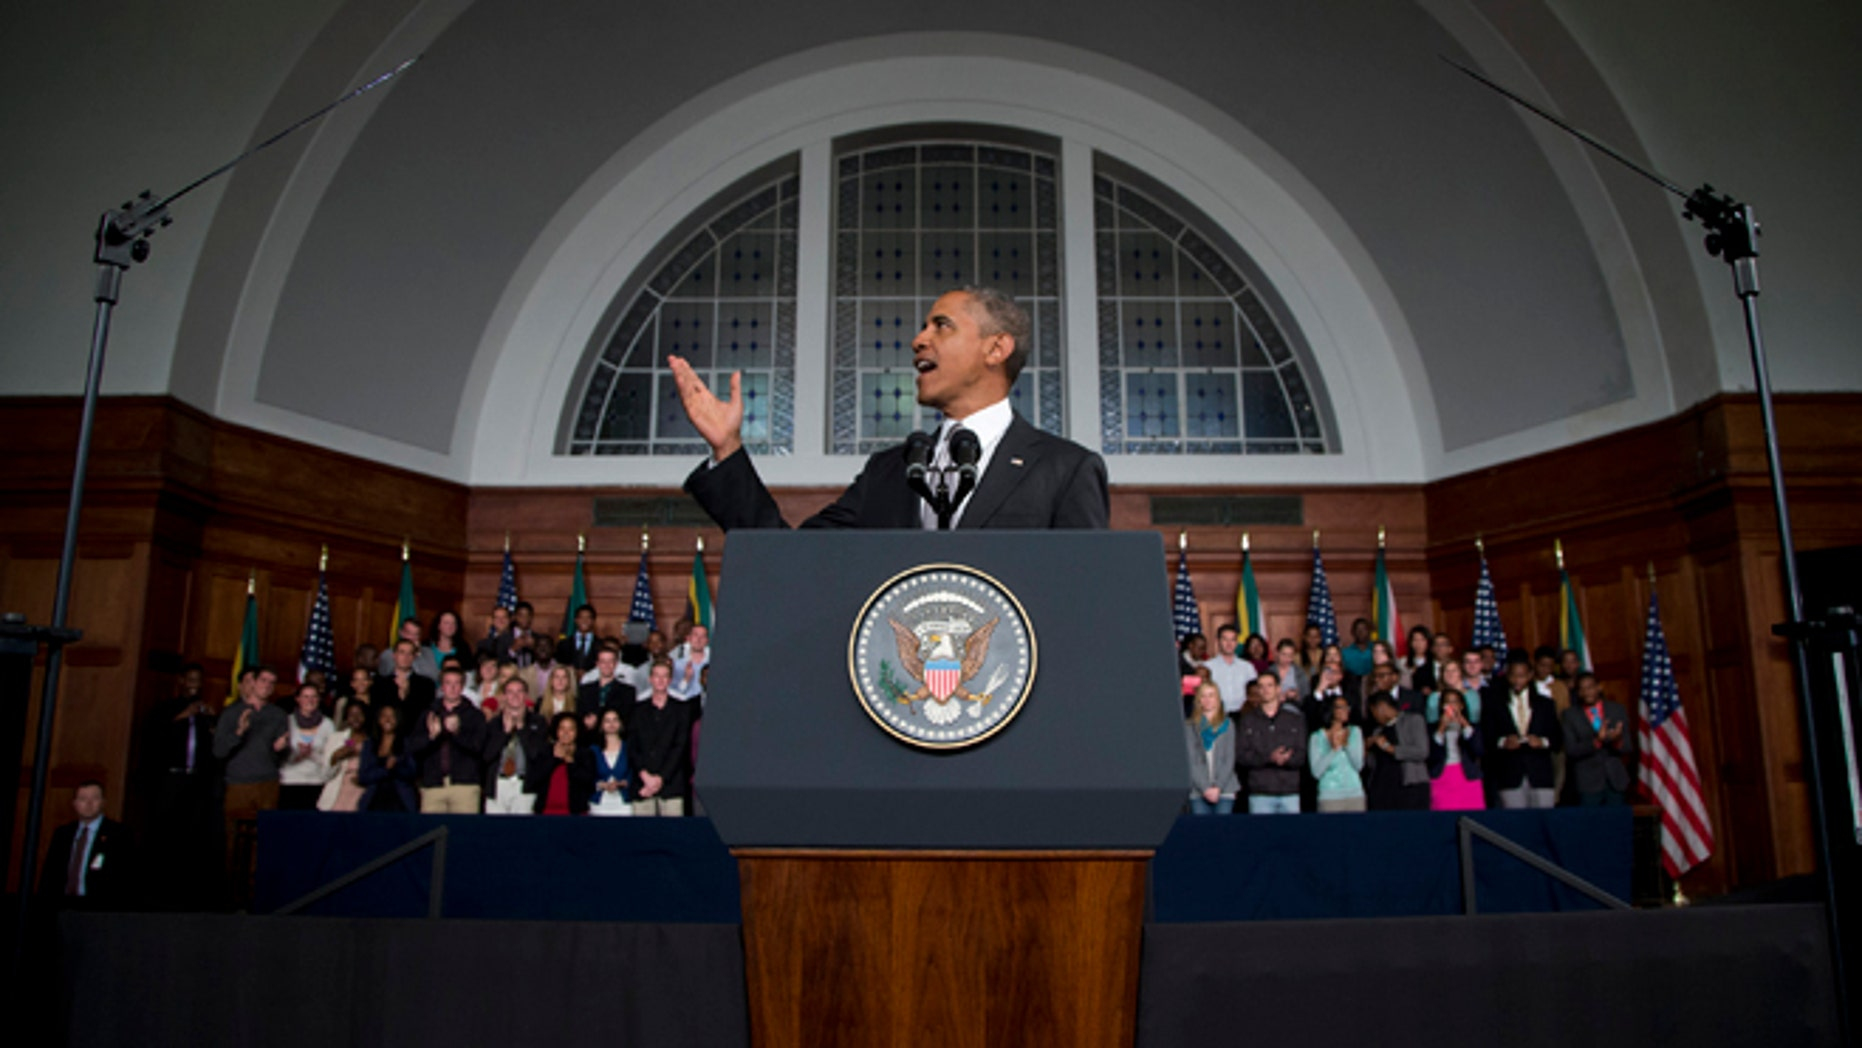 June 30, 2013: President Obama speaks at the University of Cape Town in Cape Town, South Africa.